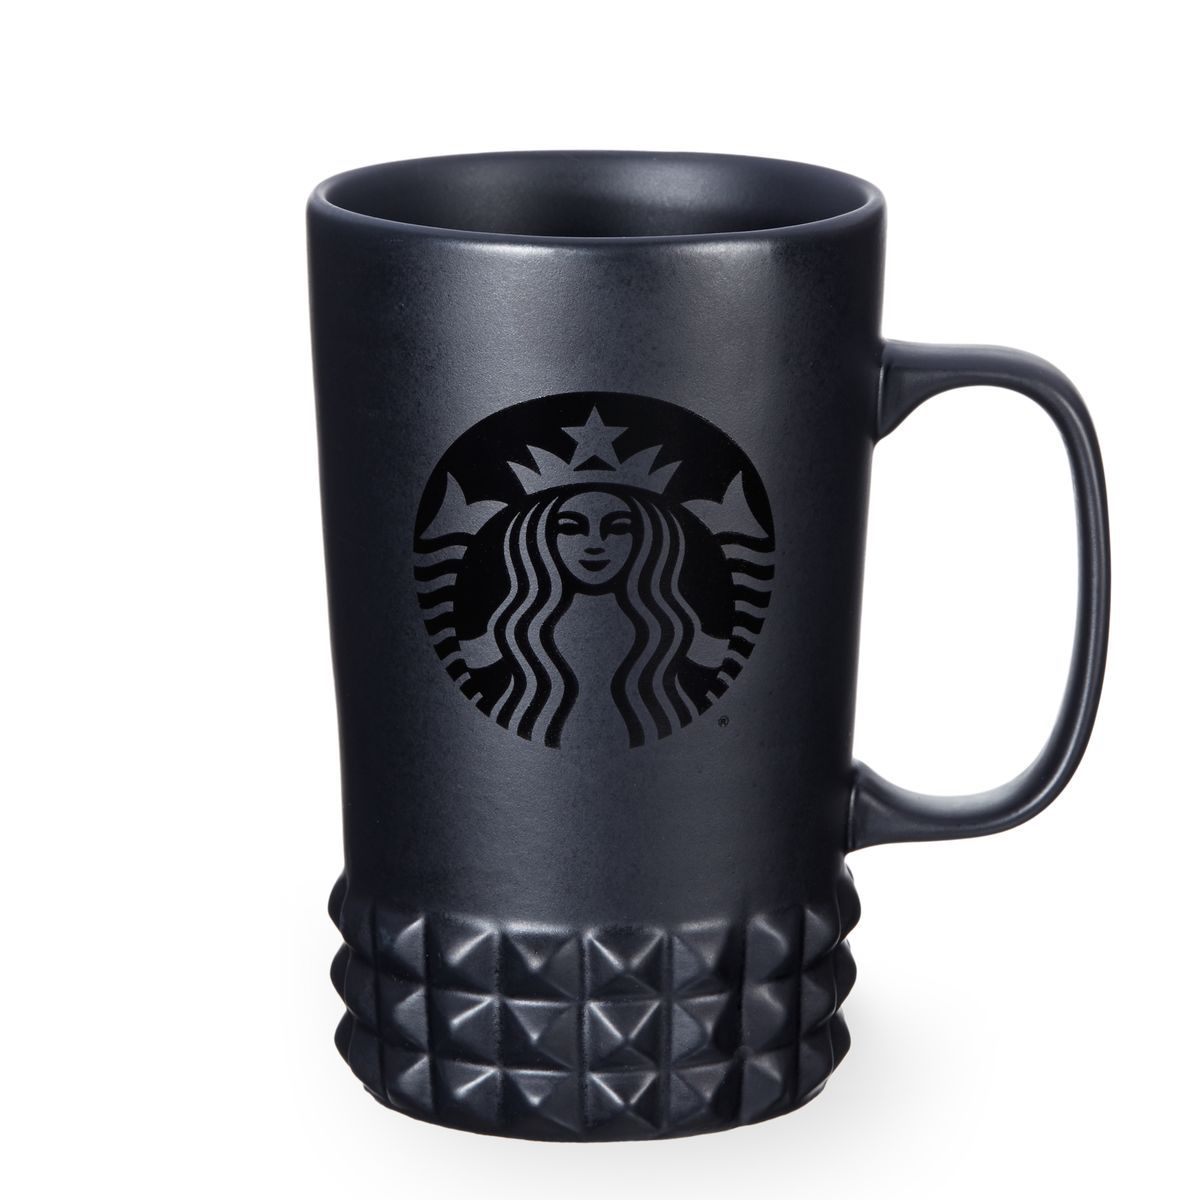 A Ceramic Coffee Mug With A Matte Black Body And Studded